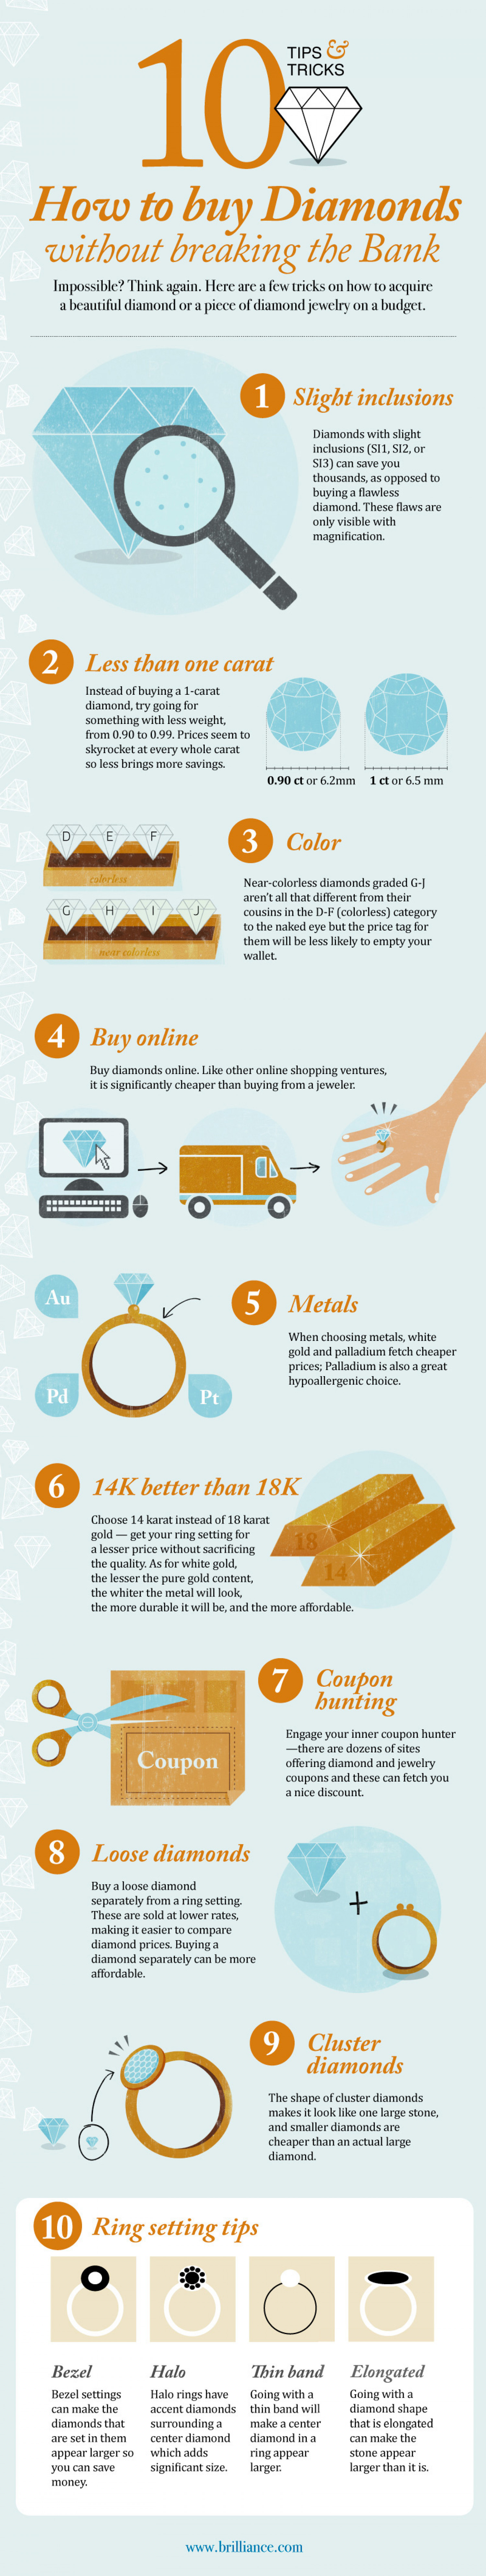 Top 10 Diamond Buying Tips Infographic